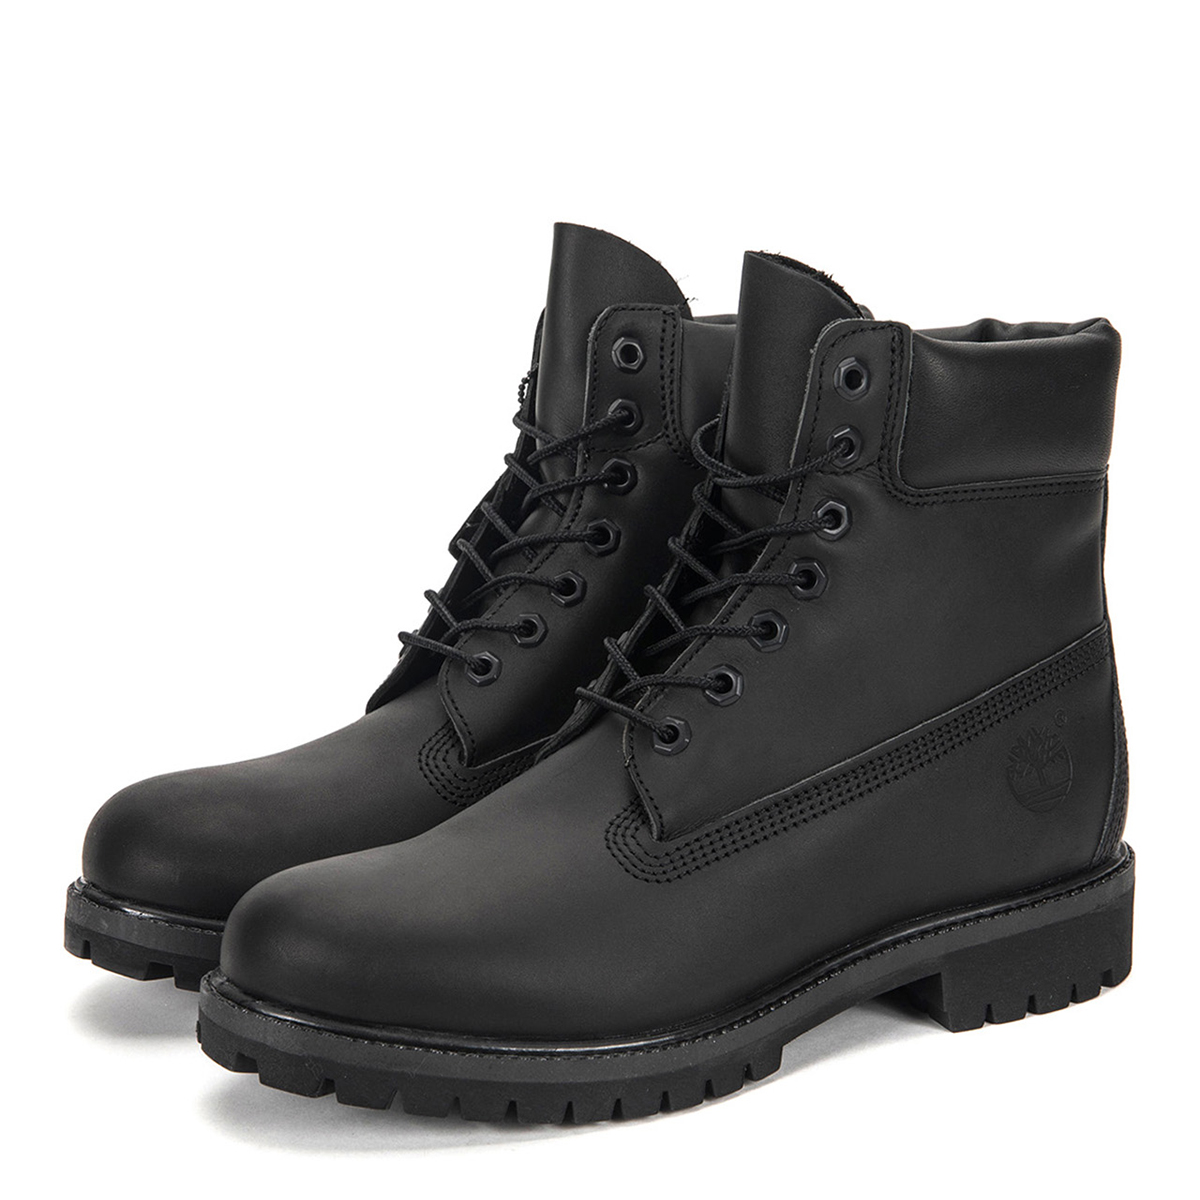 """Timberland Men's 6"""" Premuim Waterproof Boots TB0A1MA6001 Black by"""